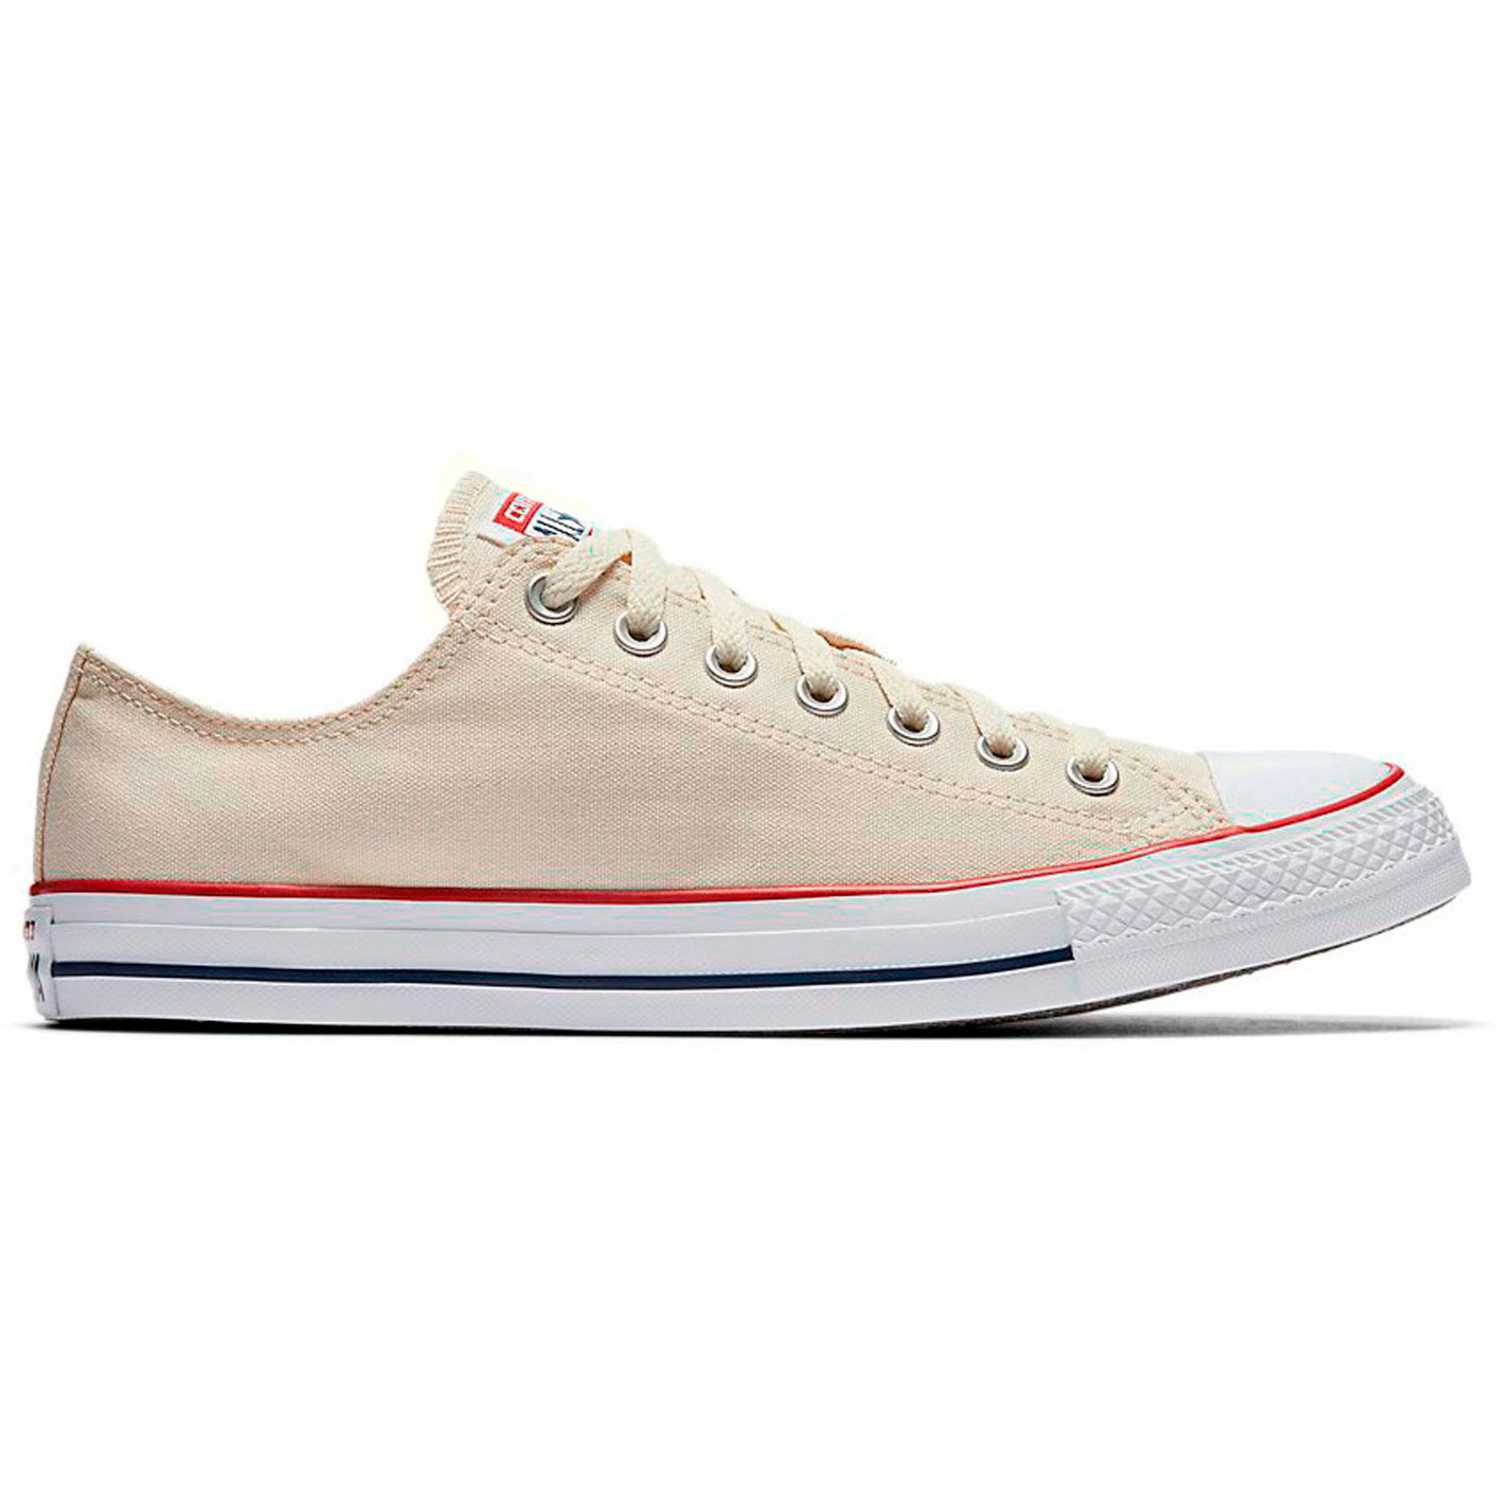 Zapatilla de Jovencita Converse Crema ct as core ox